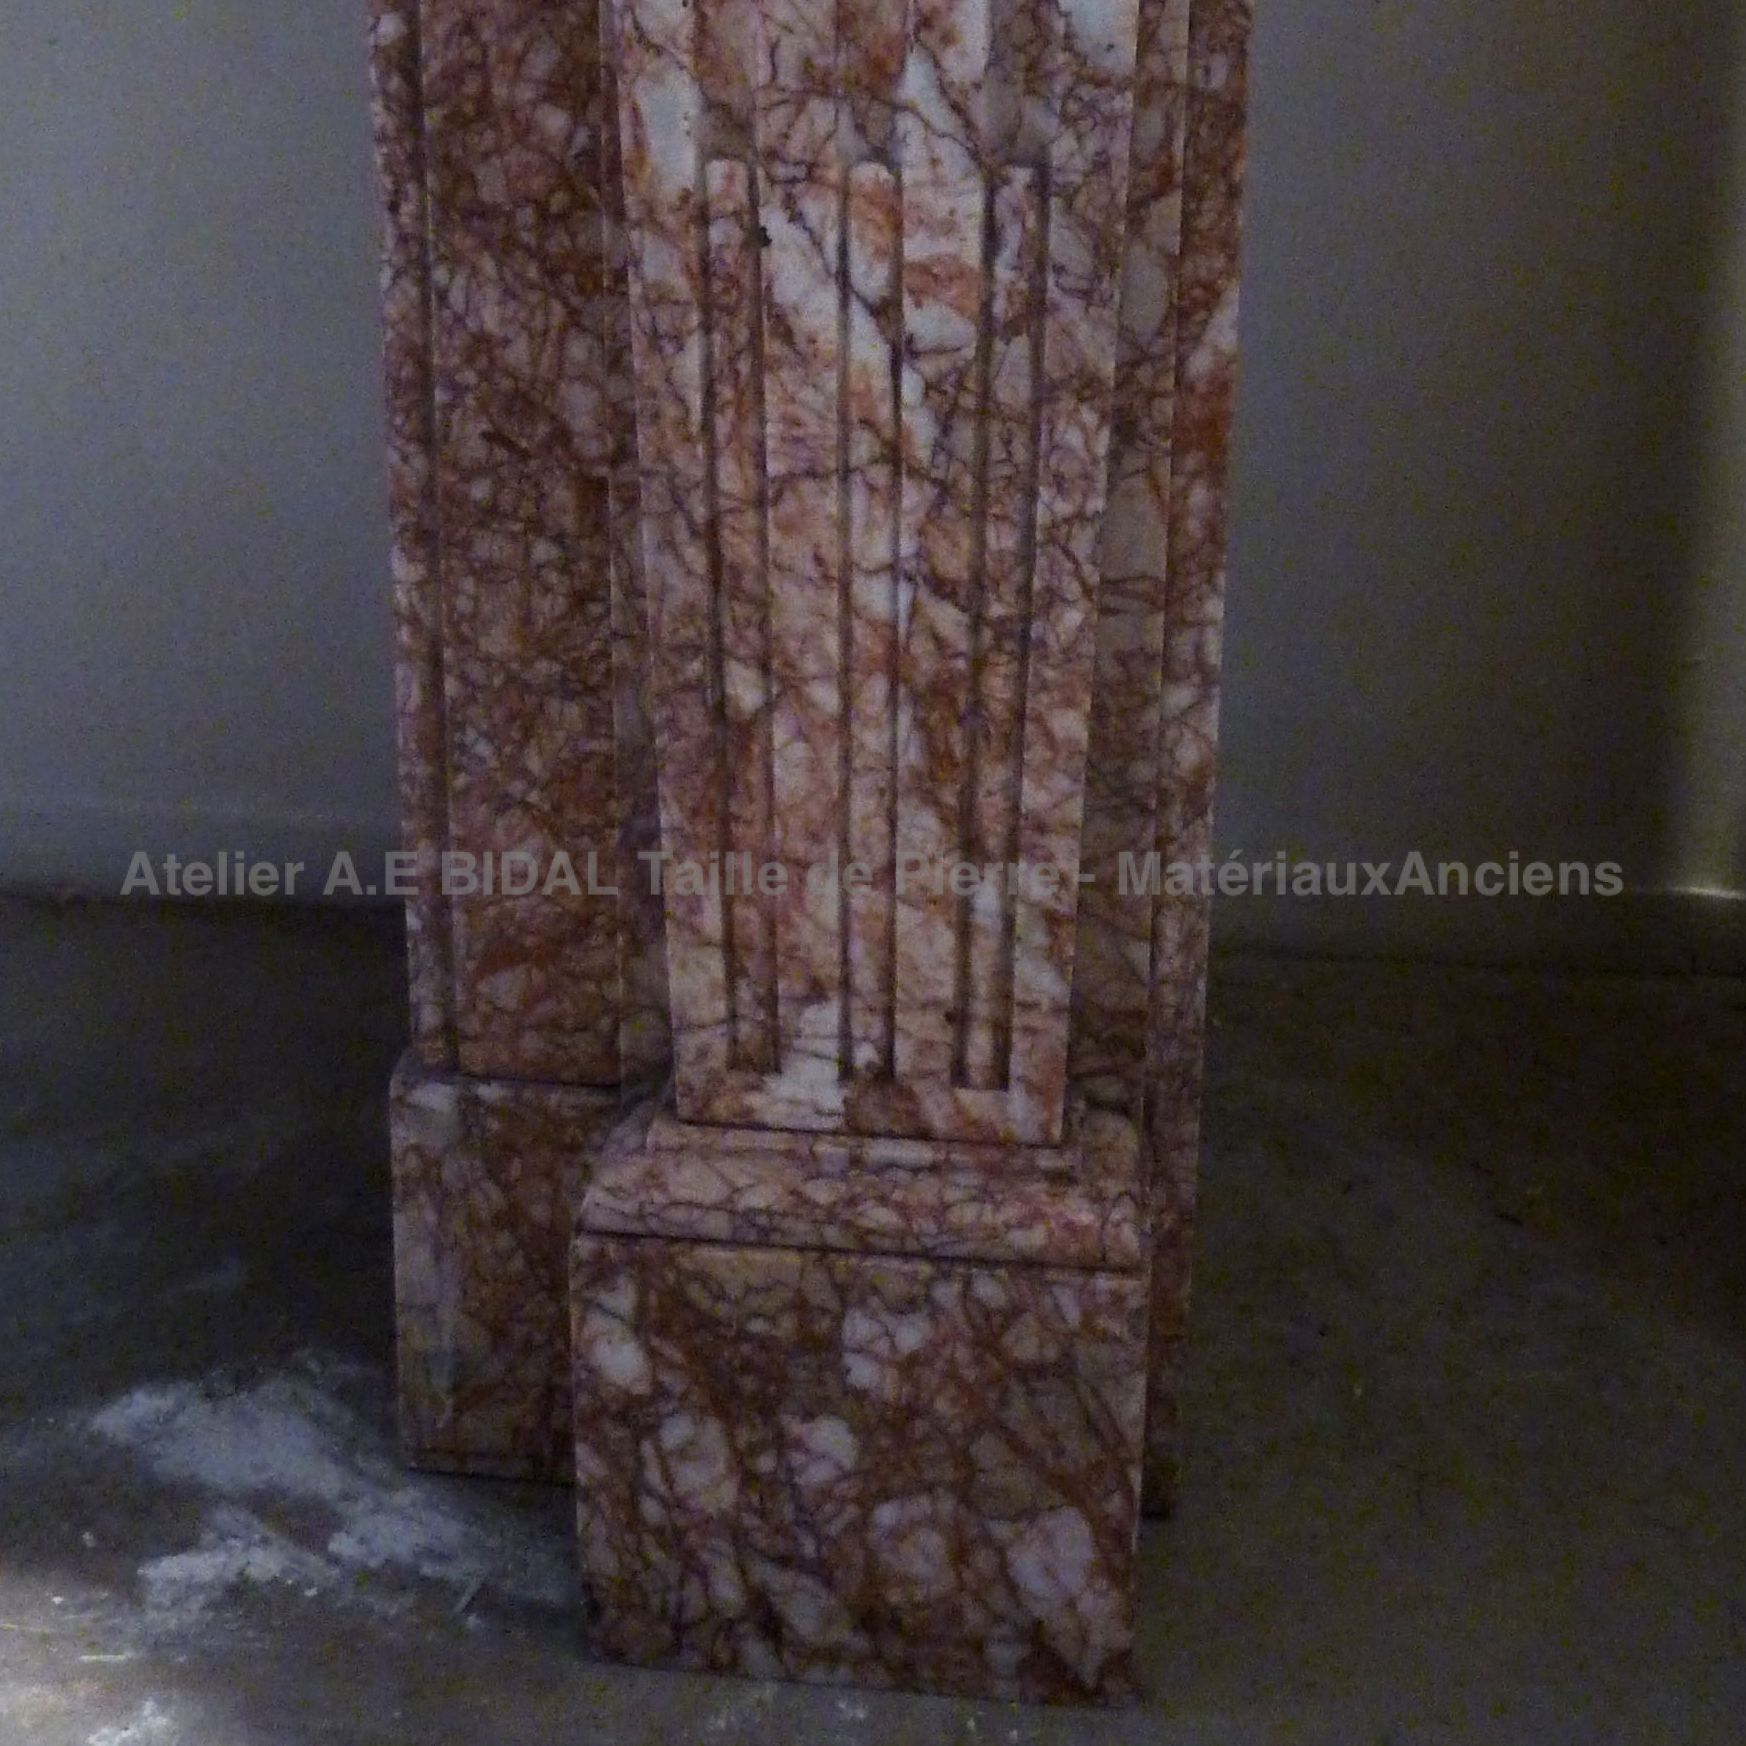 Decoration of the jamb of our pink marble fireplace with white stipes - Louis 16 fireplace.